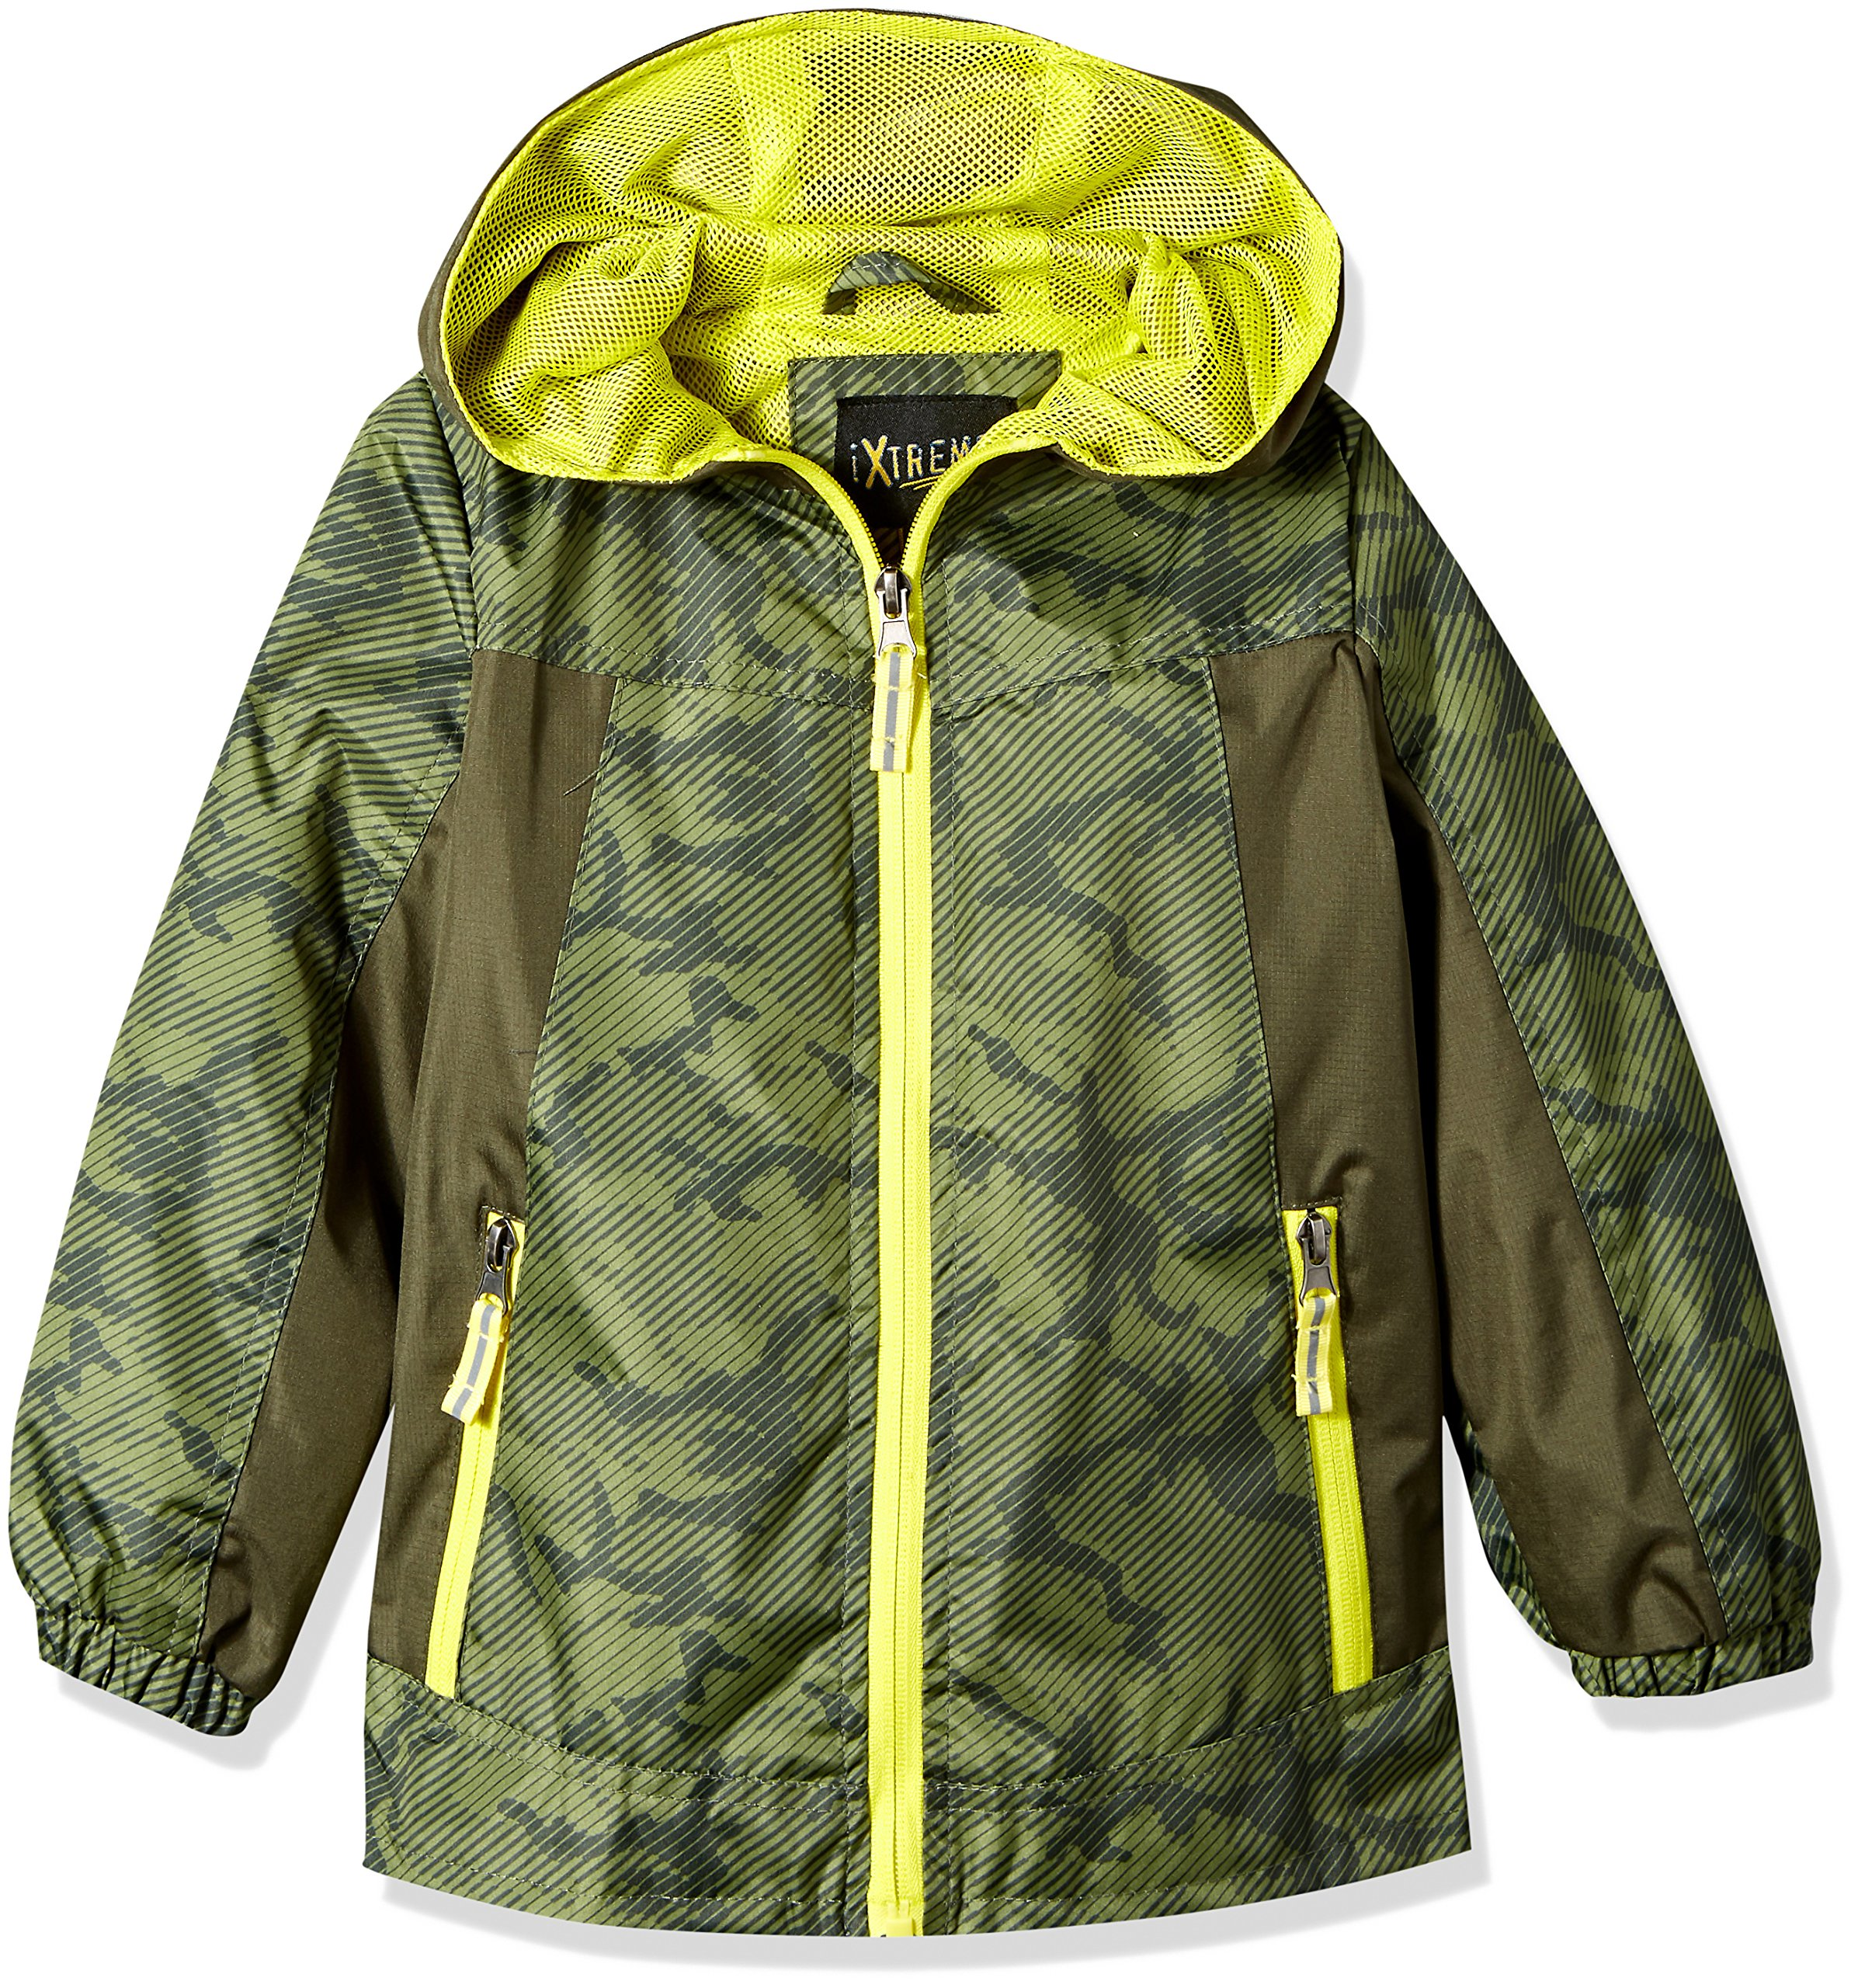 iXtreme Big Boys' Ripstop Active Jacket with Mesh Lining, Olive, 14/16 by iXtreme